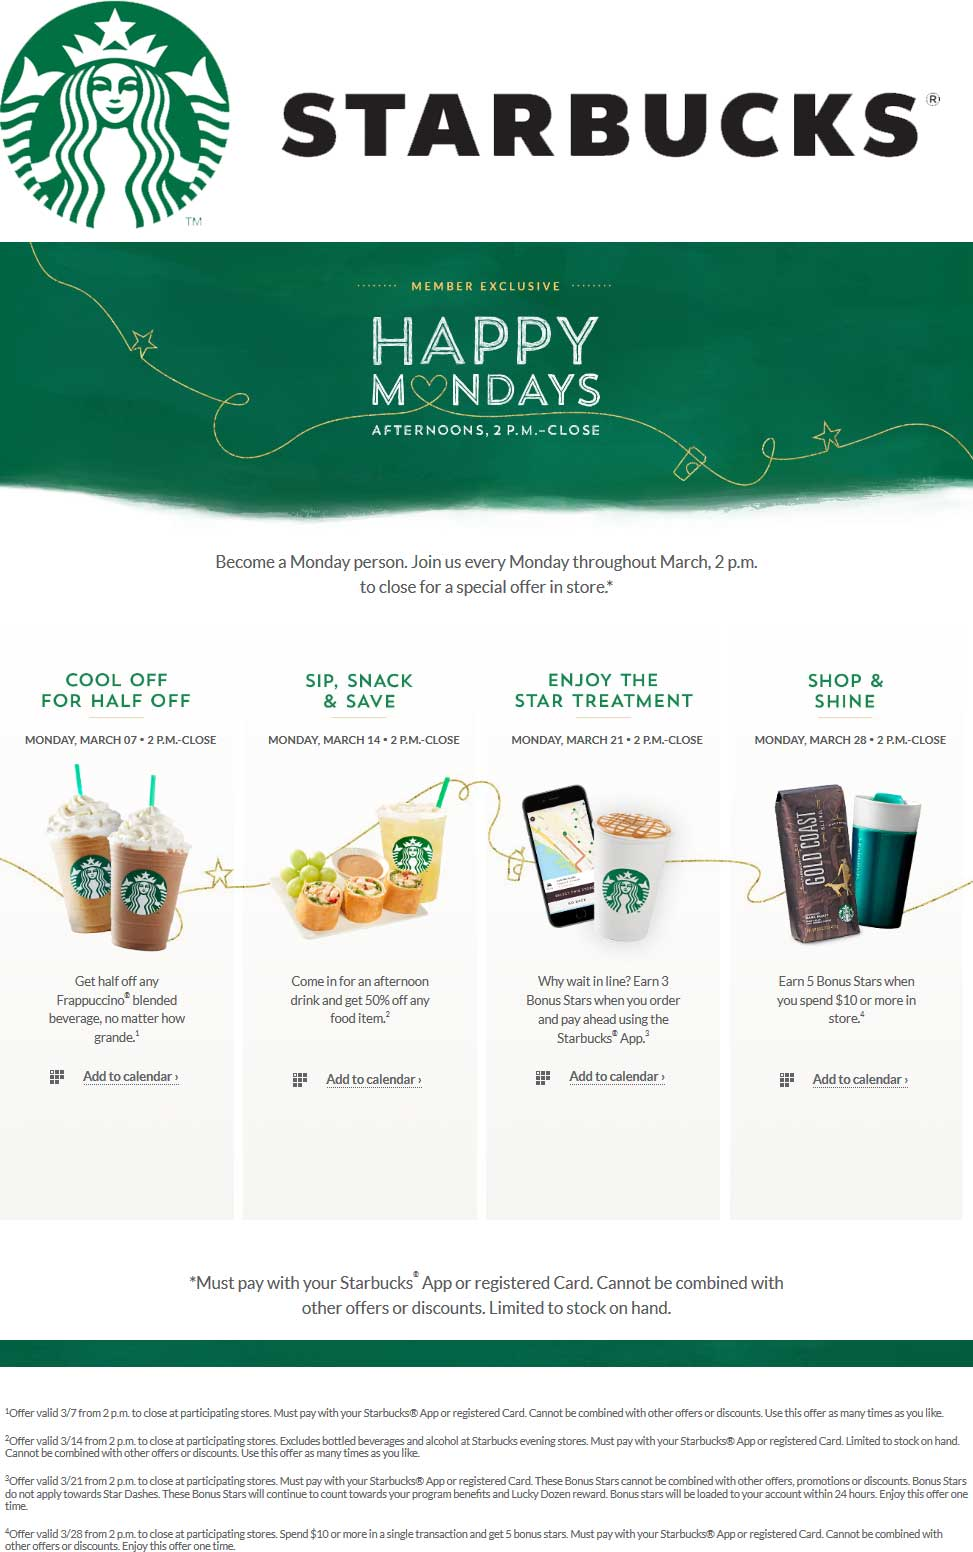 Starbucks Coupon October 2019 50% off Frappuccinos Monday after 2pm at Starbucks